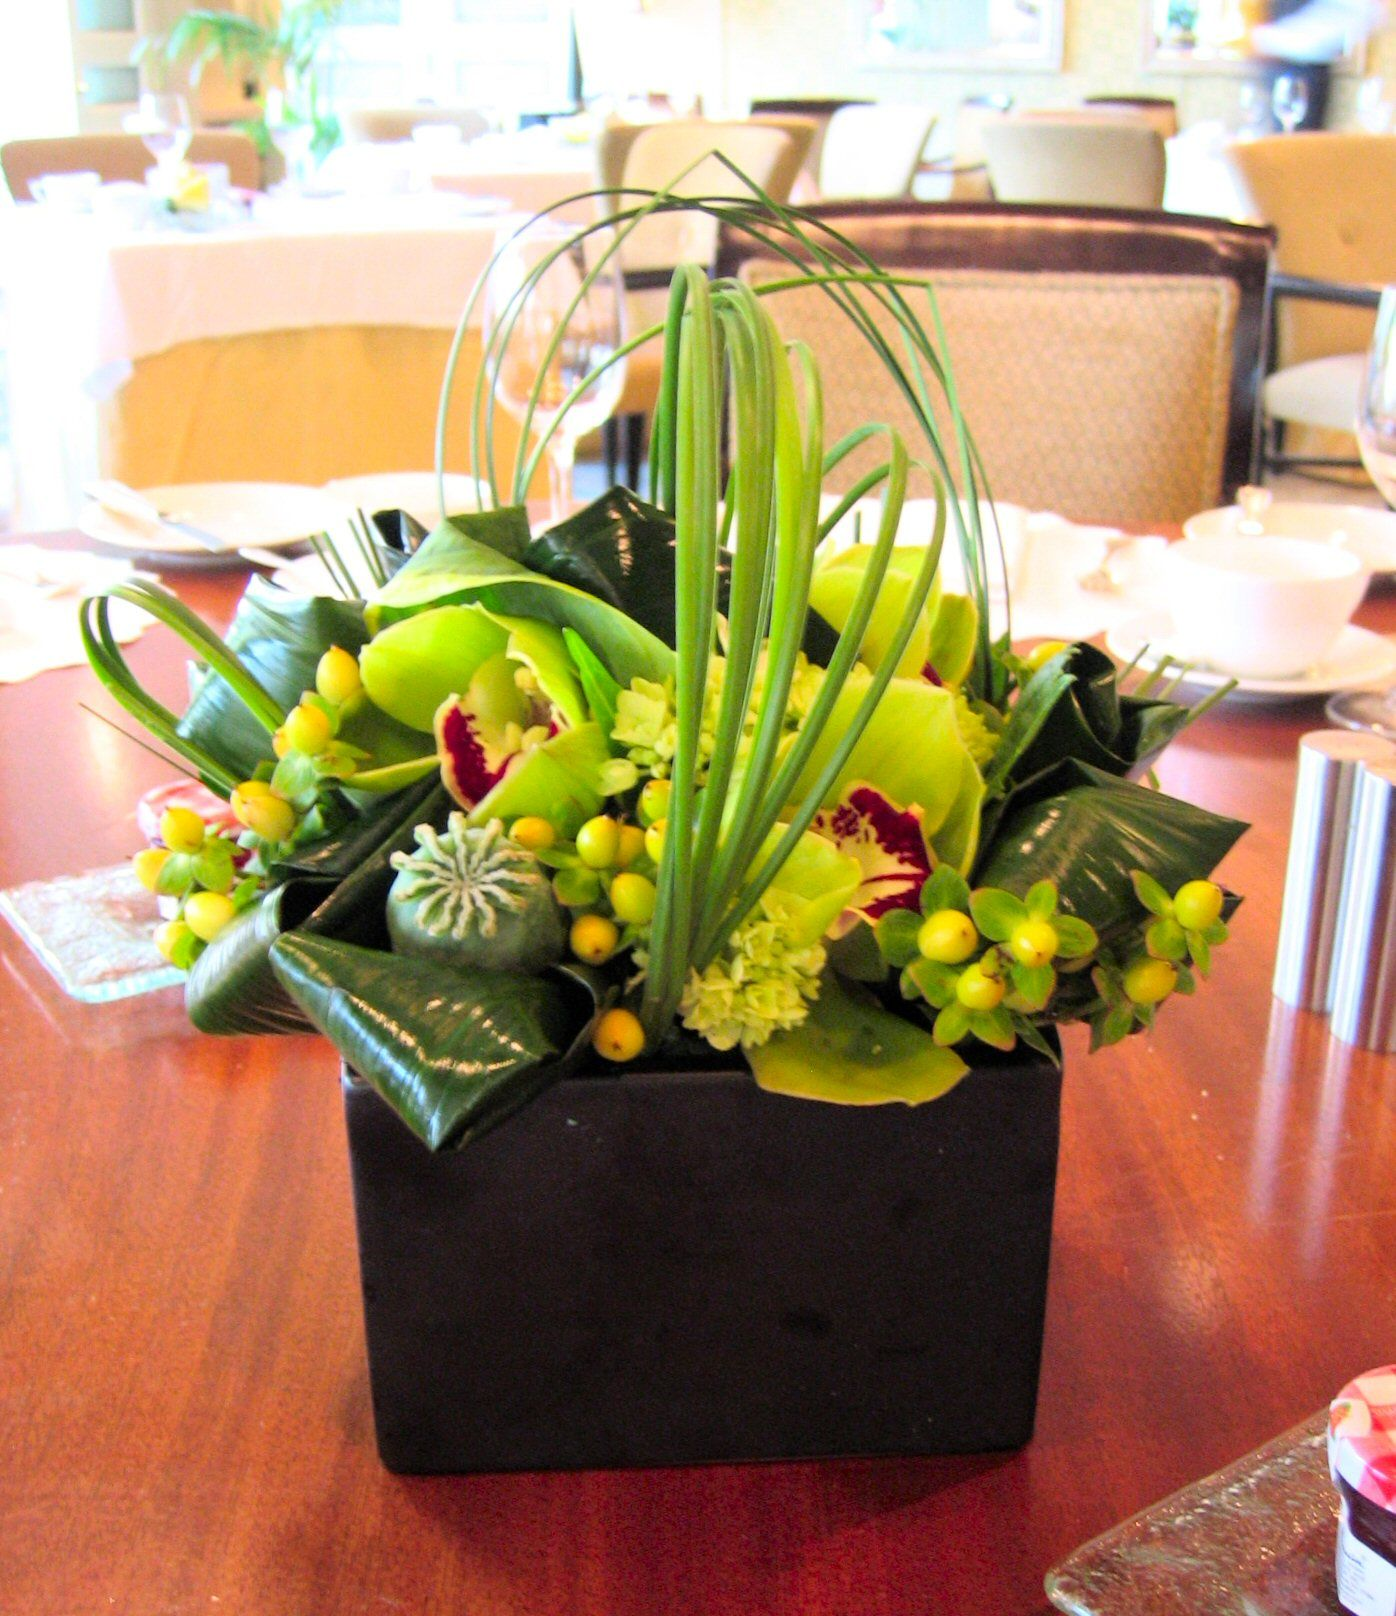 Modern Flower Arrangement With Green Cymbidium Orchids, Hypericum Berries, Poppy